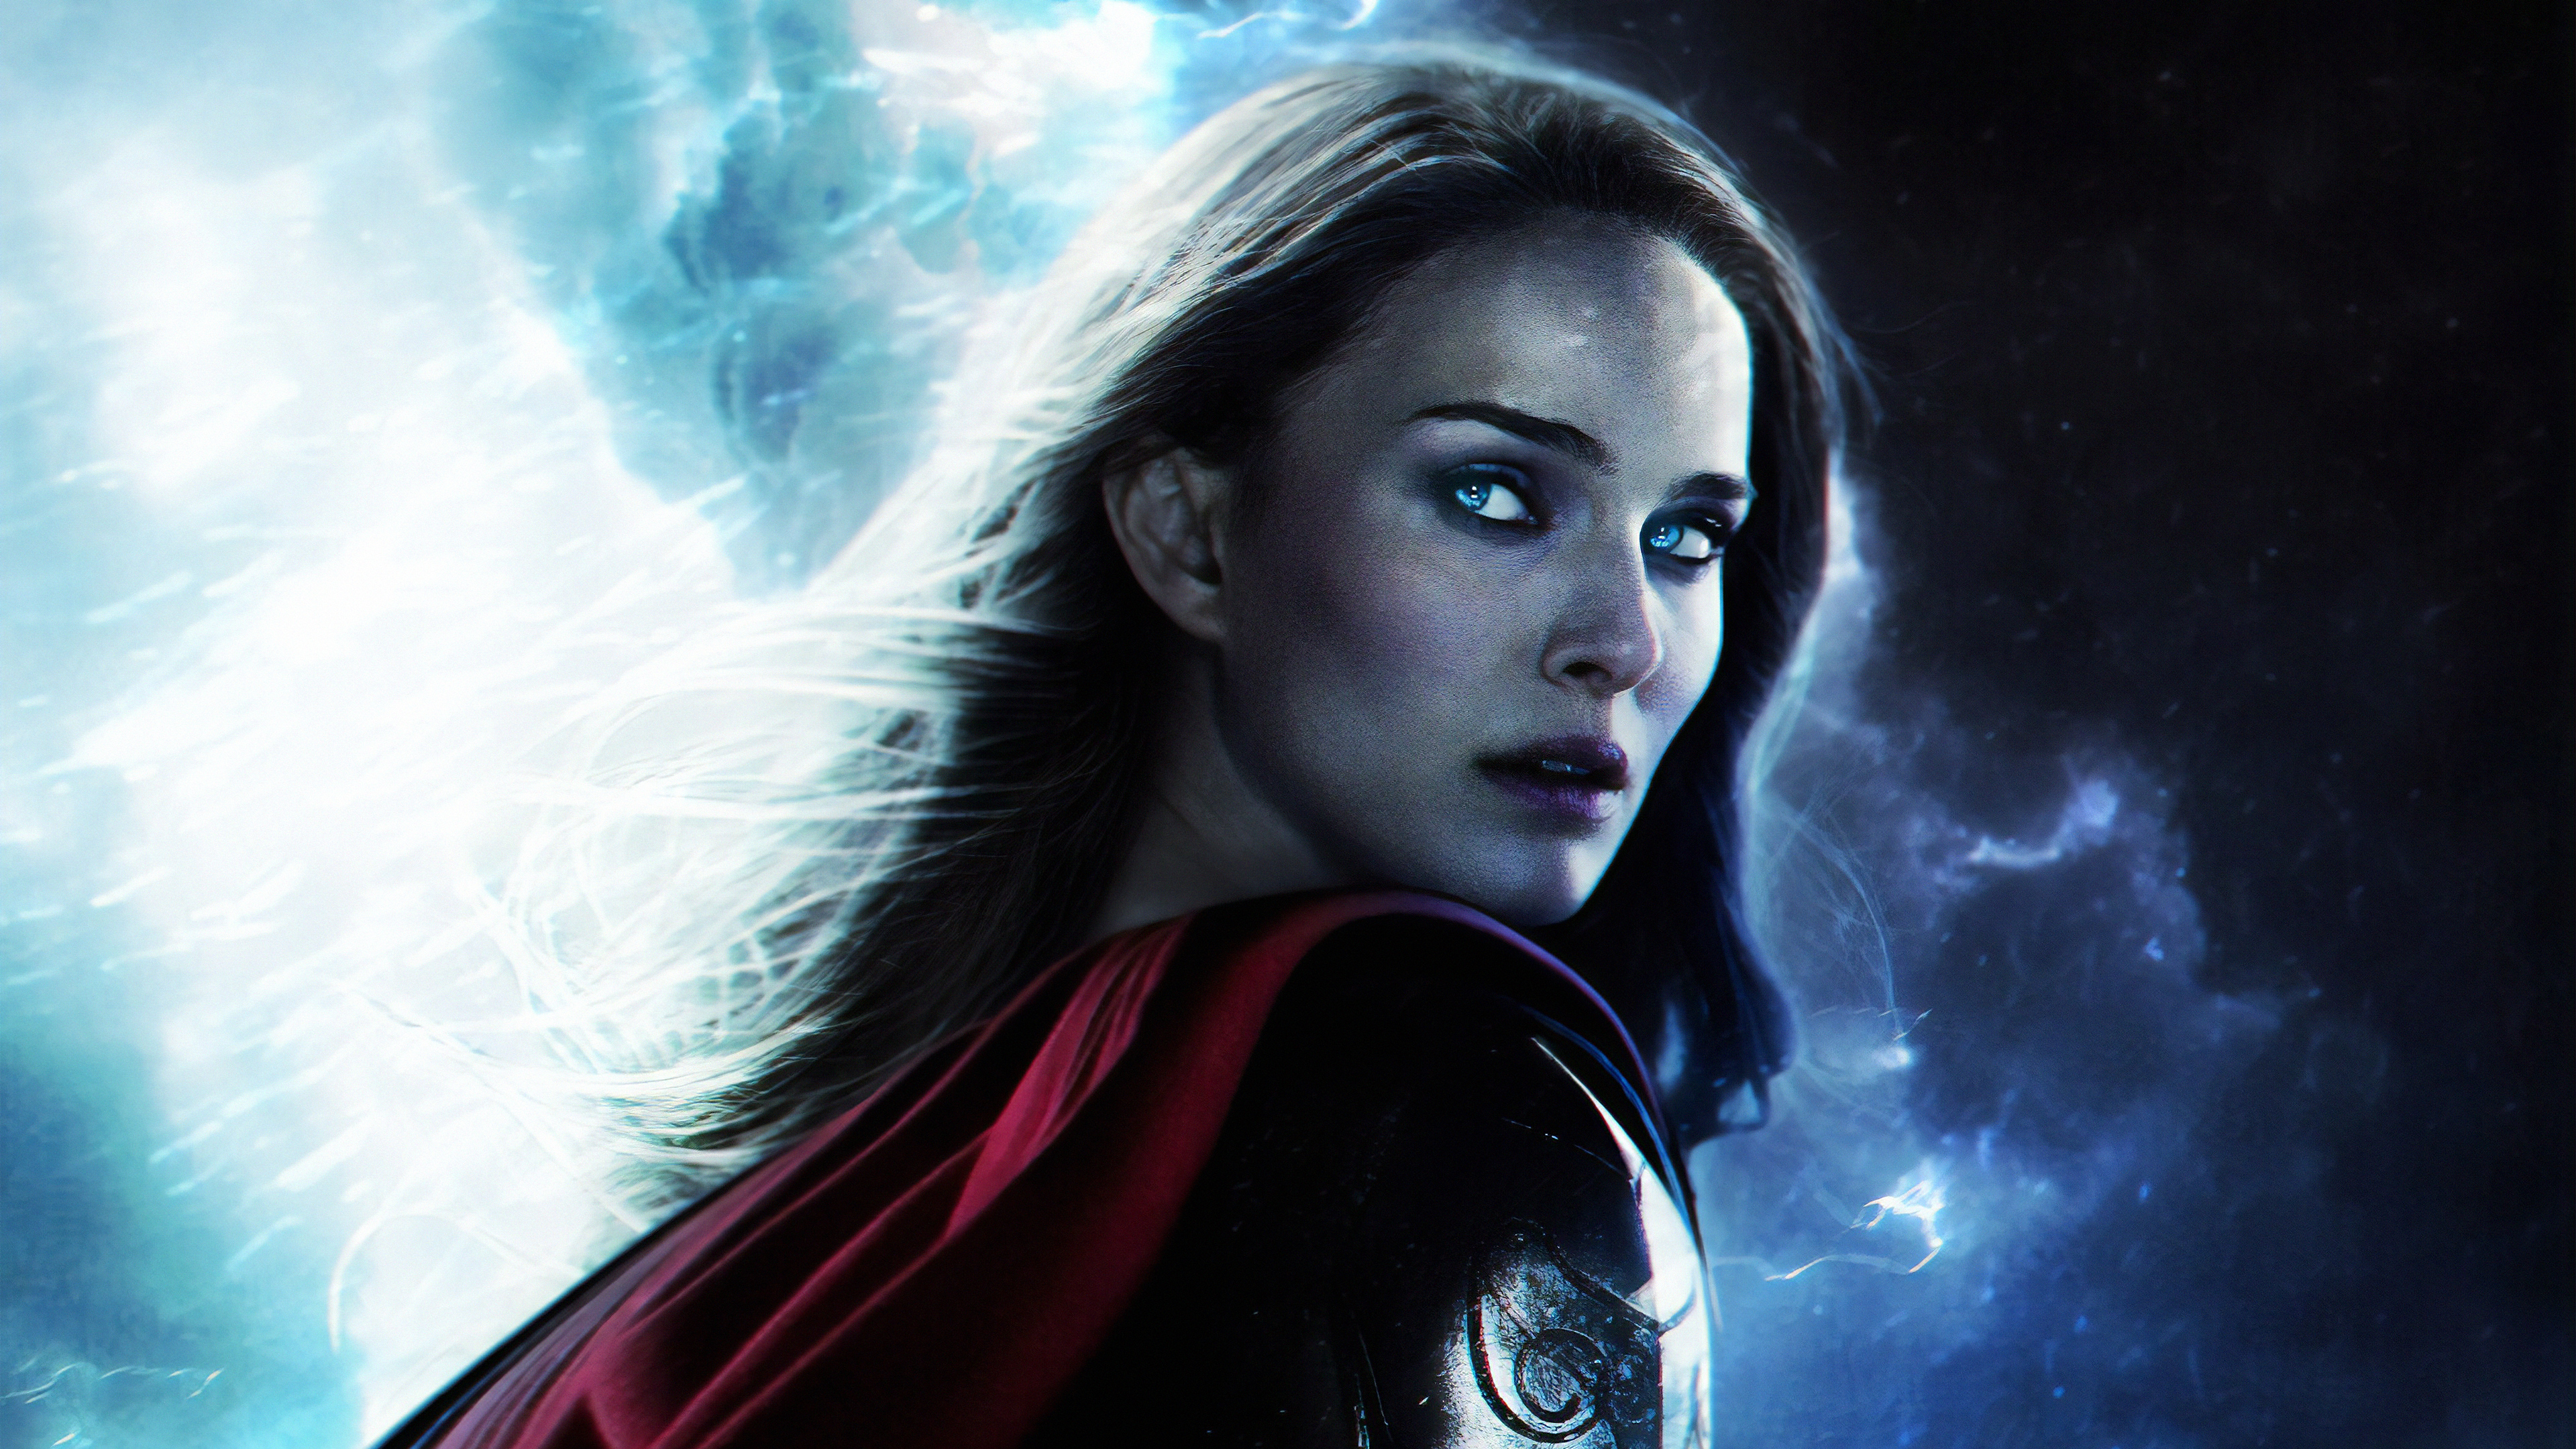 thor love and thunder 2021 jane foster 1565053075 - Thor Love And Thunder 2021 Jane Foster - thor wallpapers, thor love and thunder wallpapers, natalie portman wallpapers, movies wallpapers, hd-wallpapers, 4k-wallpapers, 2021 movies wallpapers